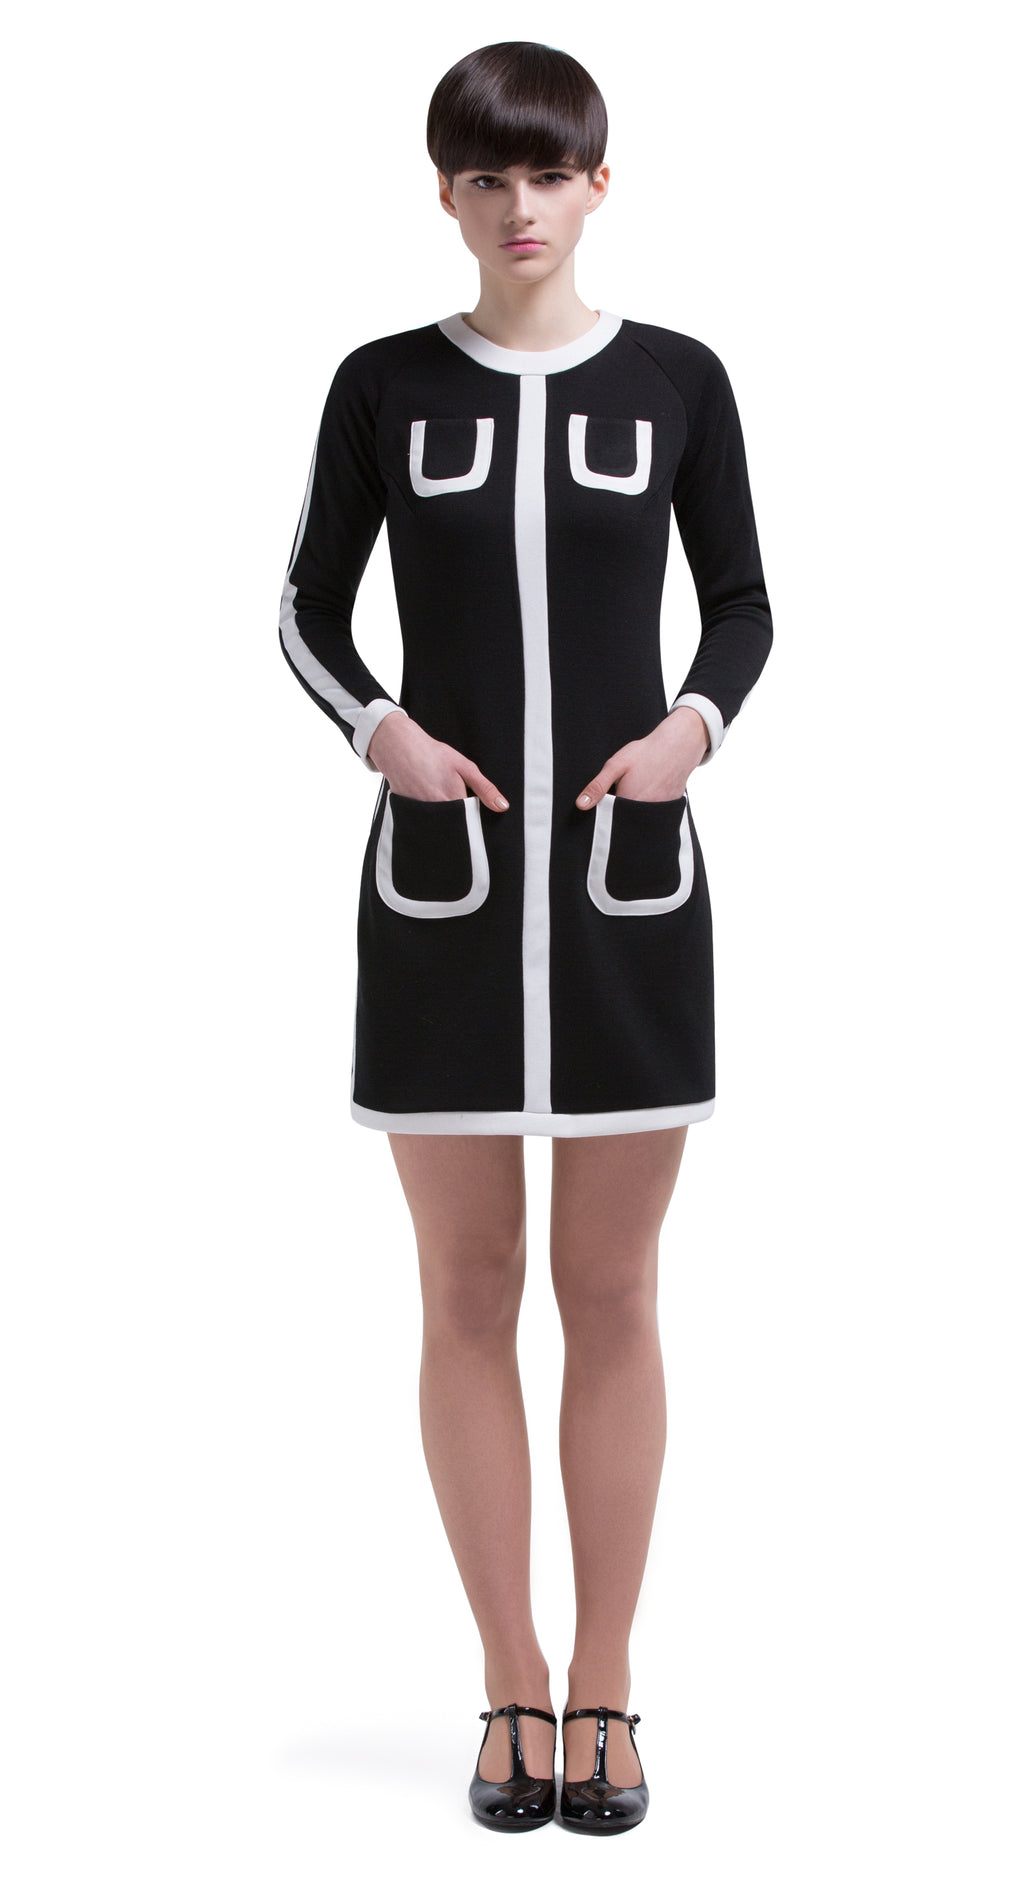 This straight cut, undeniably cool retro dress is made of an Italian jersey. A light cream rounded neckline leads into a bodice stripe dividing four perfectly placed functioning pockets. Full length sleeve with a complimenting light cream stripe and cream band cuff.  Generous stretch within the medium weight jersey. This versatile and flattering style can be dressed up by accessorizing or toned down with comfy kicks for both at-work and play.